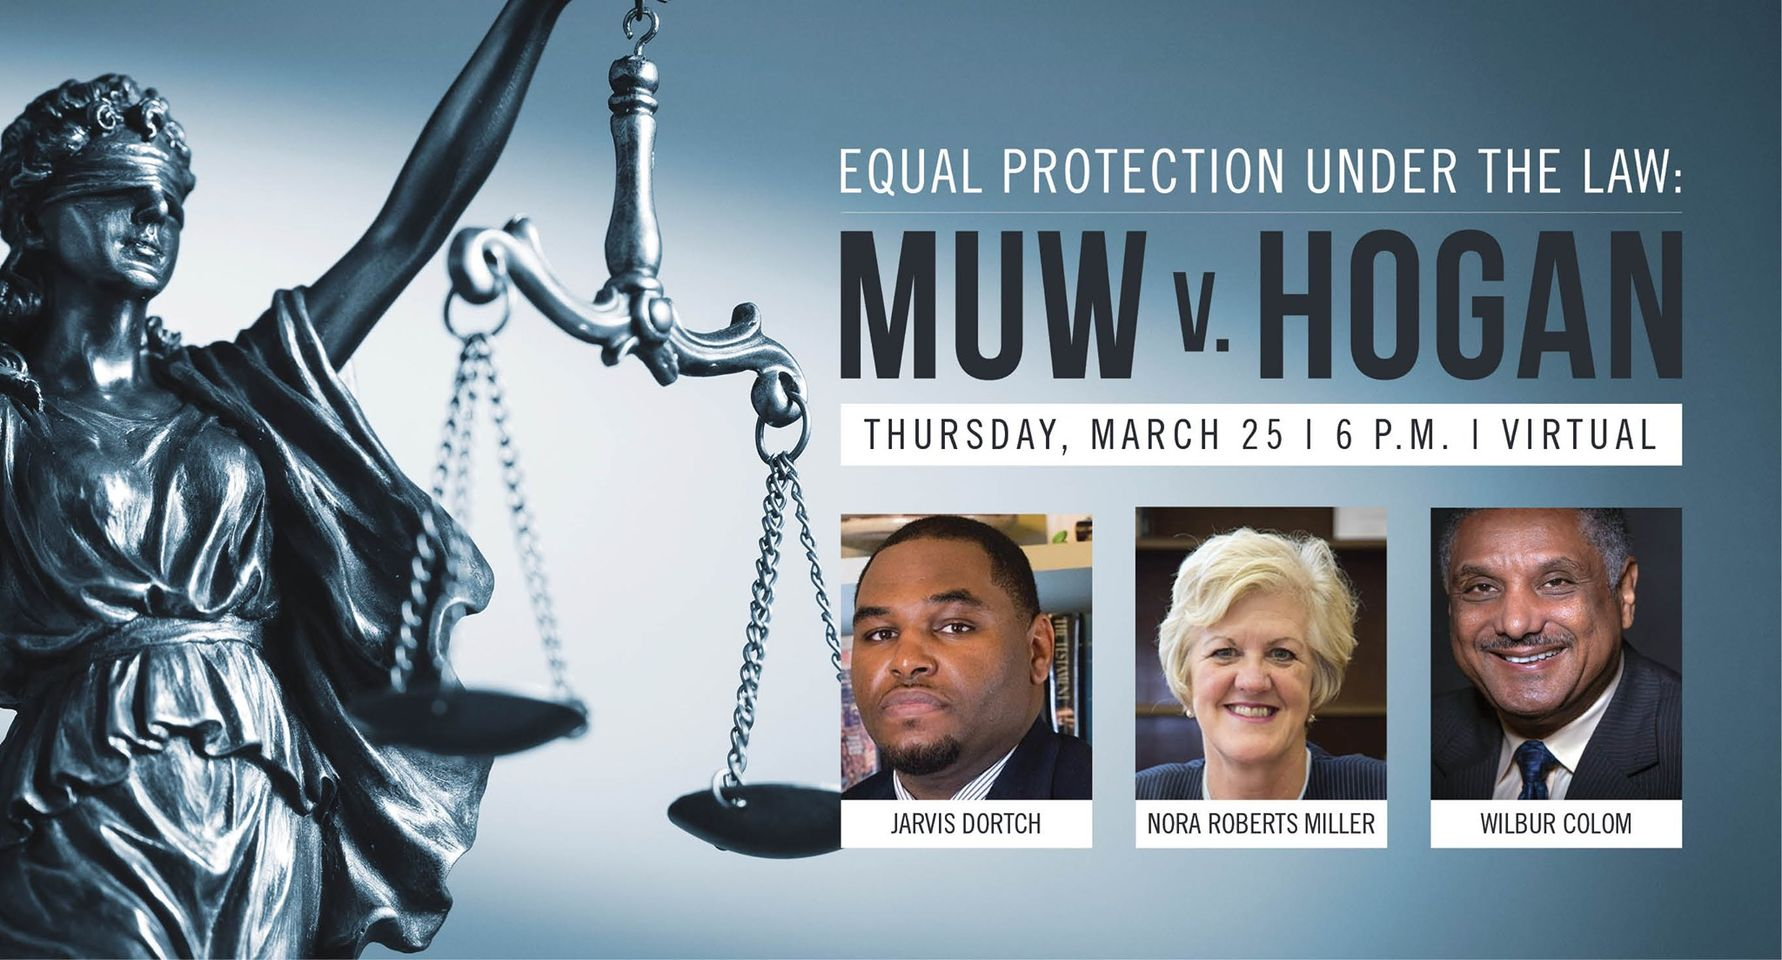 Equal Protection Under the Law: MUW v. Hogan